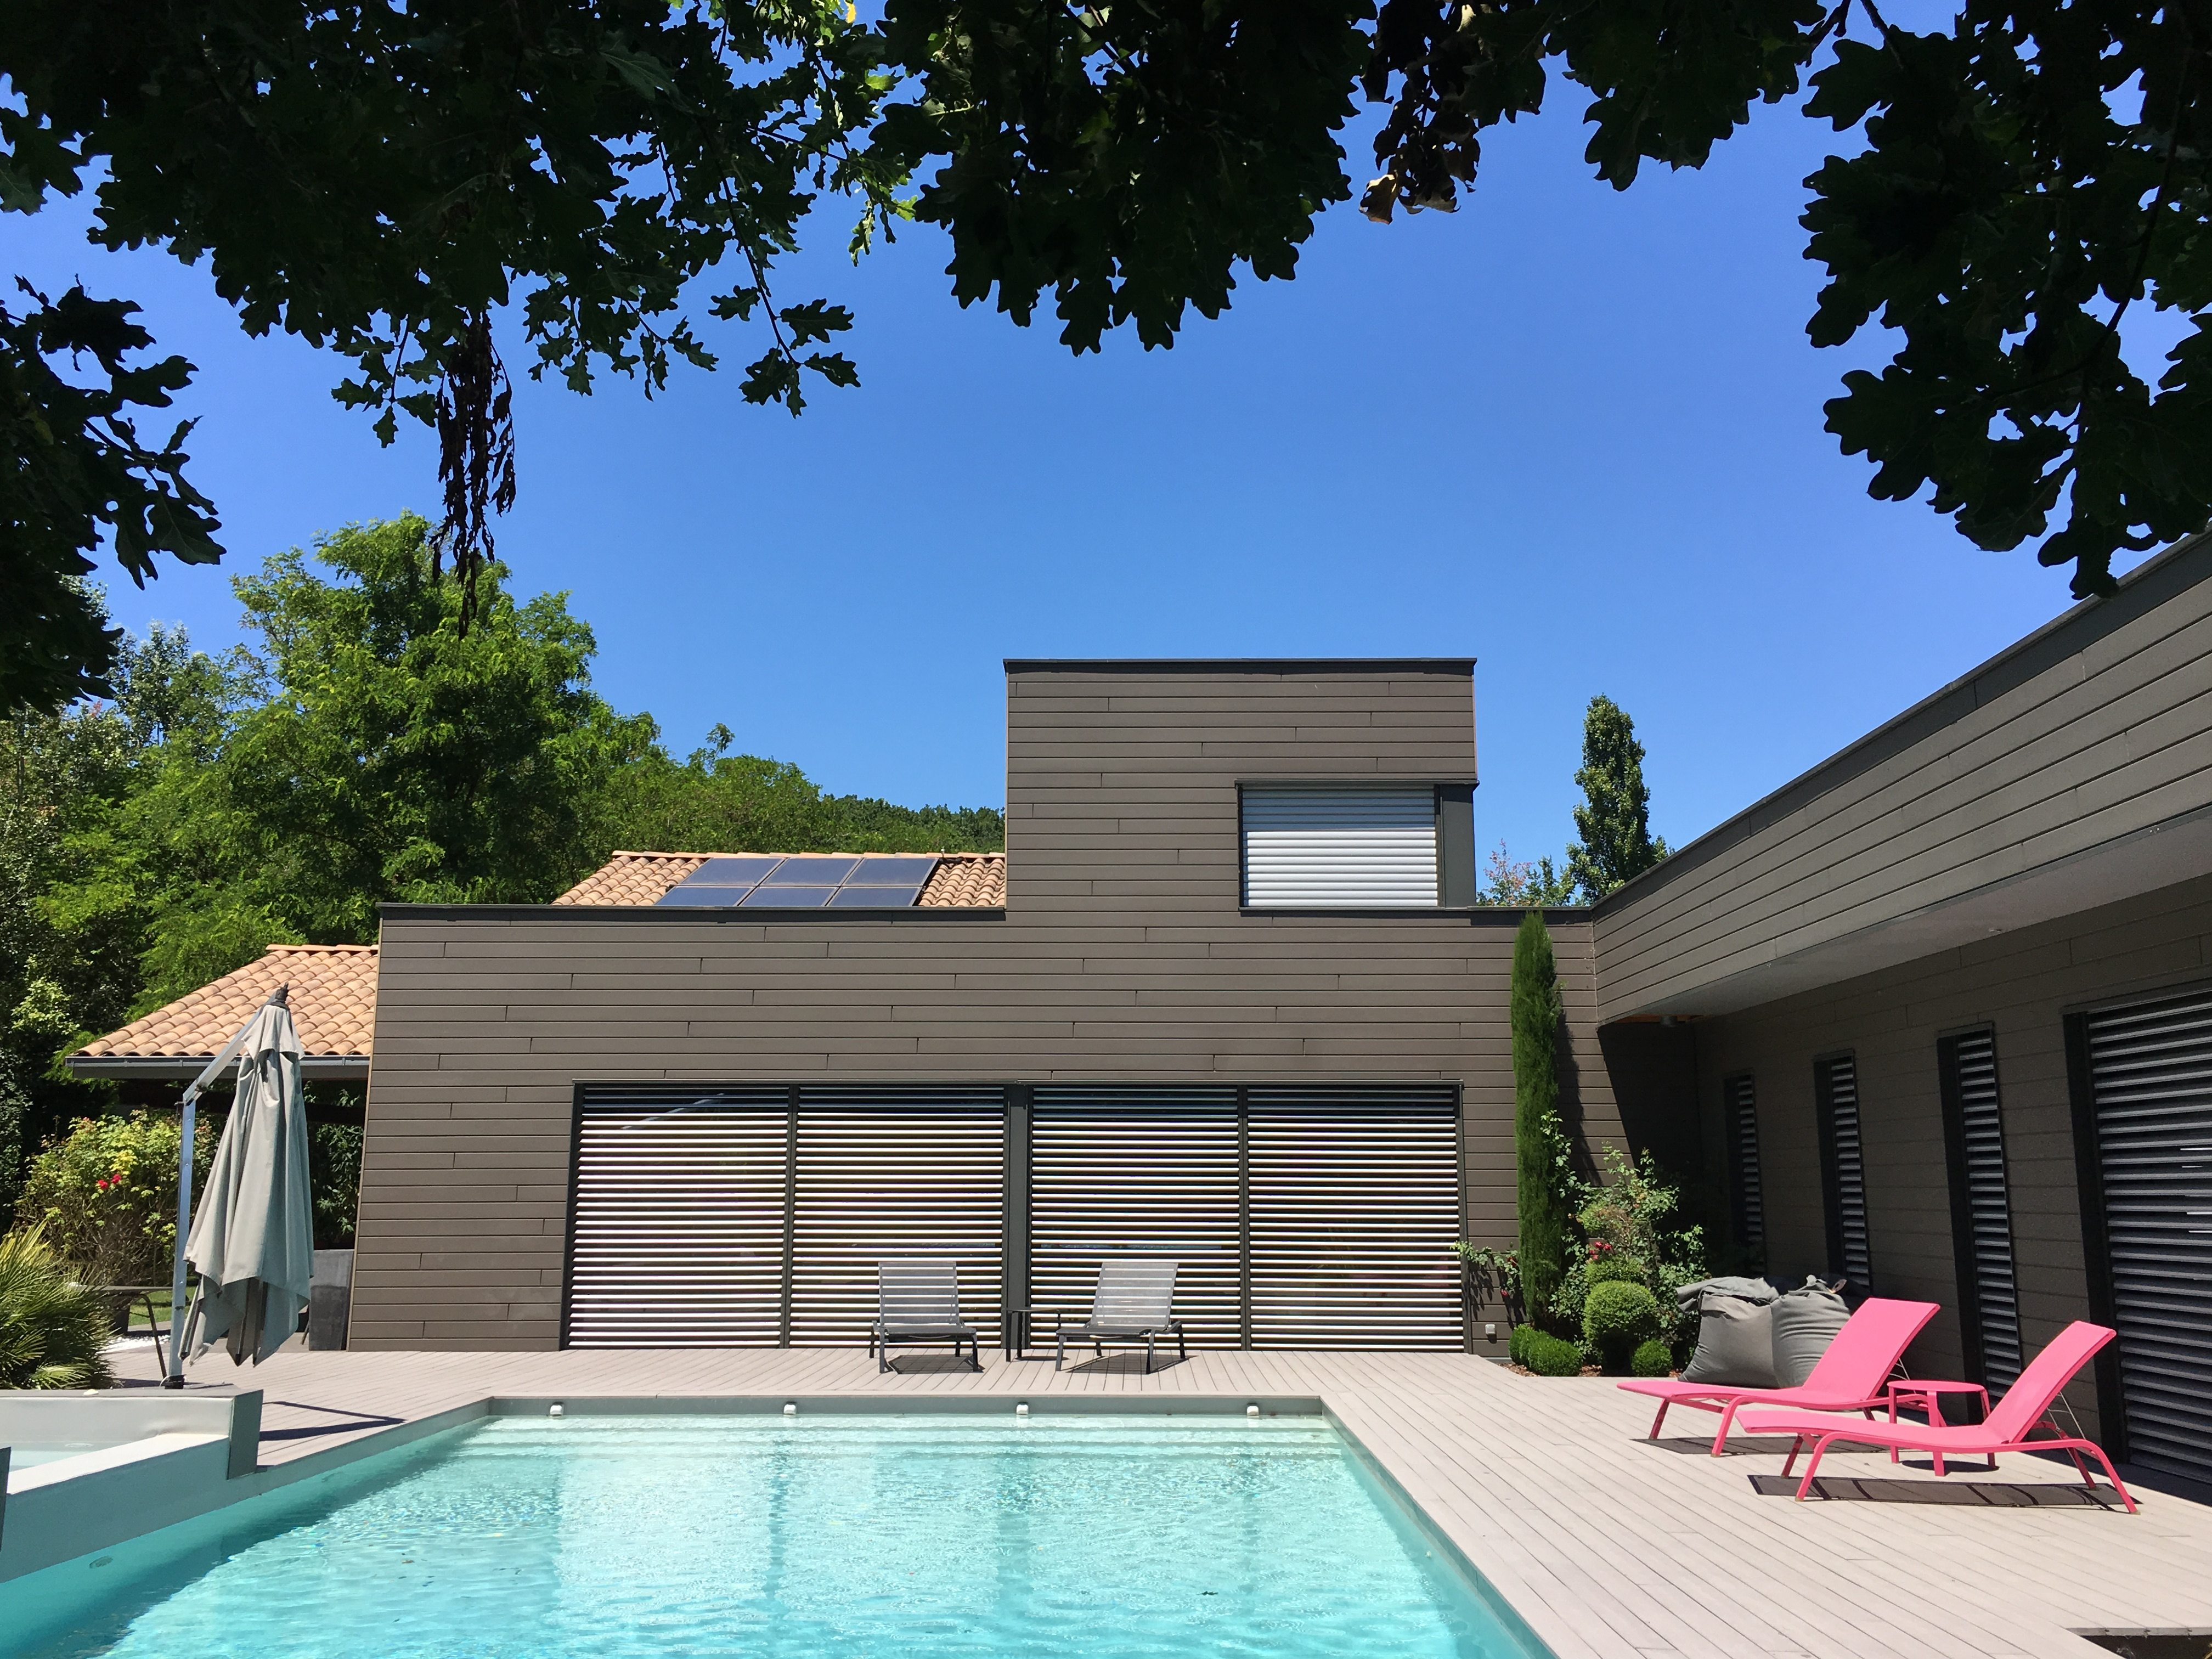 rare maison contemporaine avec piscine, Photo 7